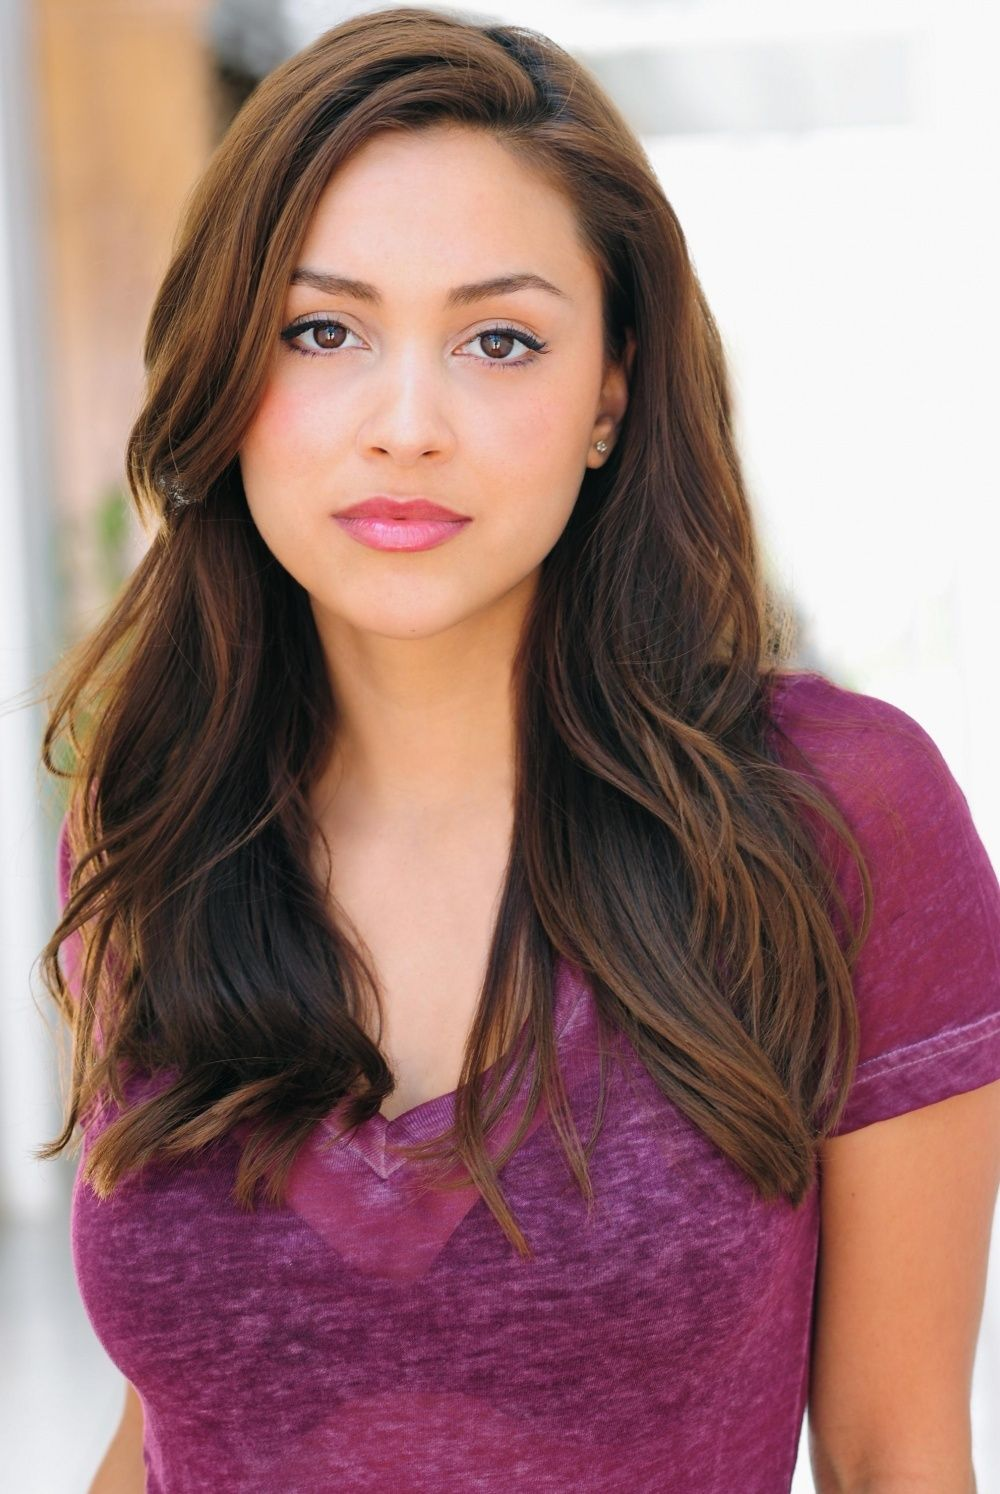 Celebrites Lindsey Morgan naked (53 photos), Tits, Is a cute, Boobs, butt 2017